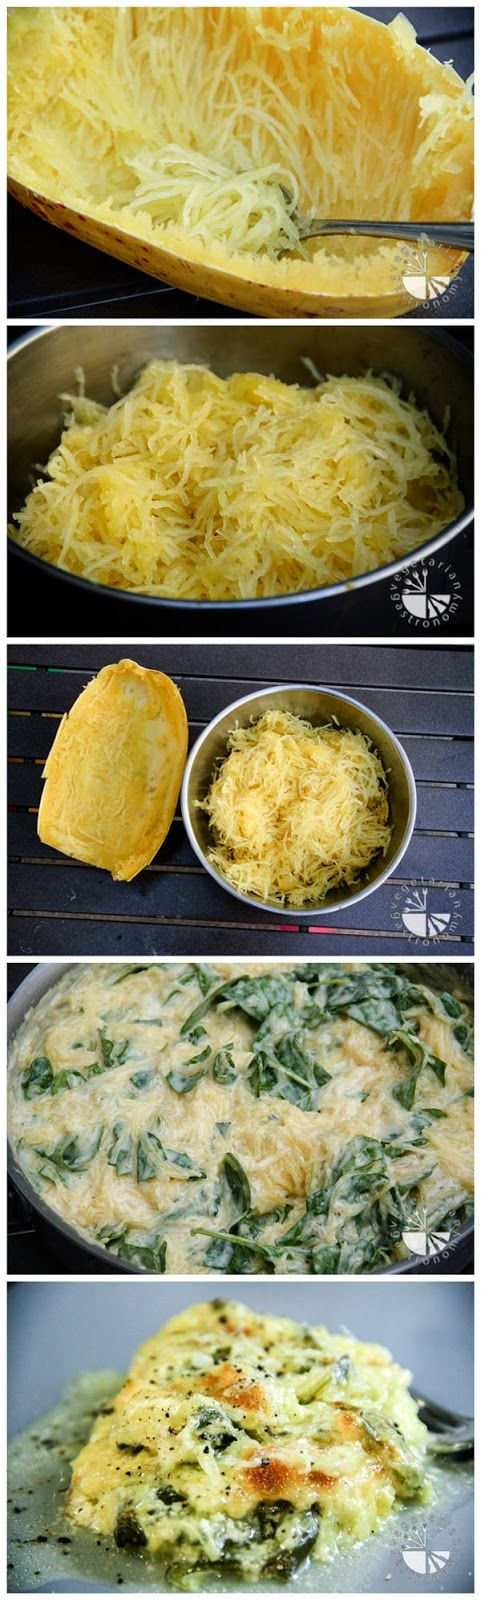 Baked Spaghetti Squash w/Cheddar Cheese & Spinach (sub corn starch for flour)